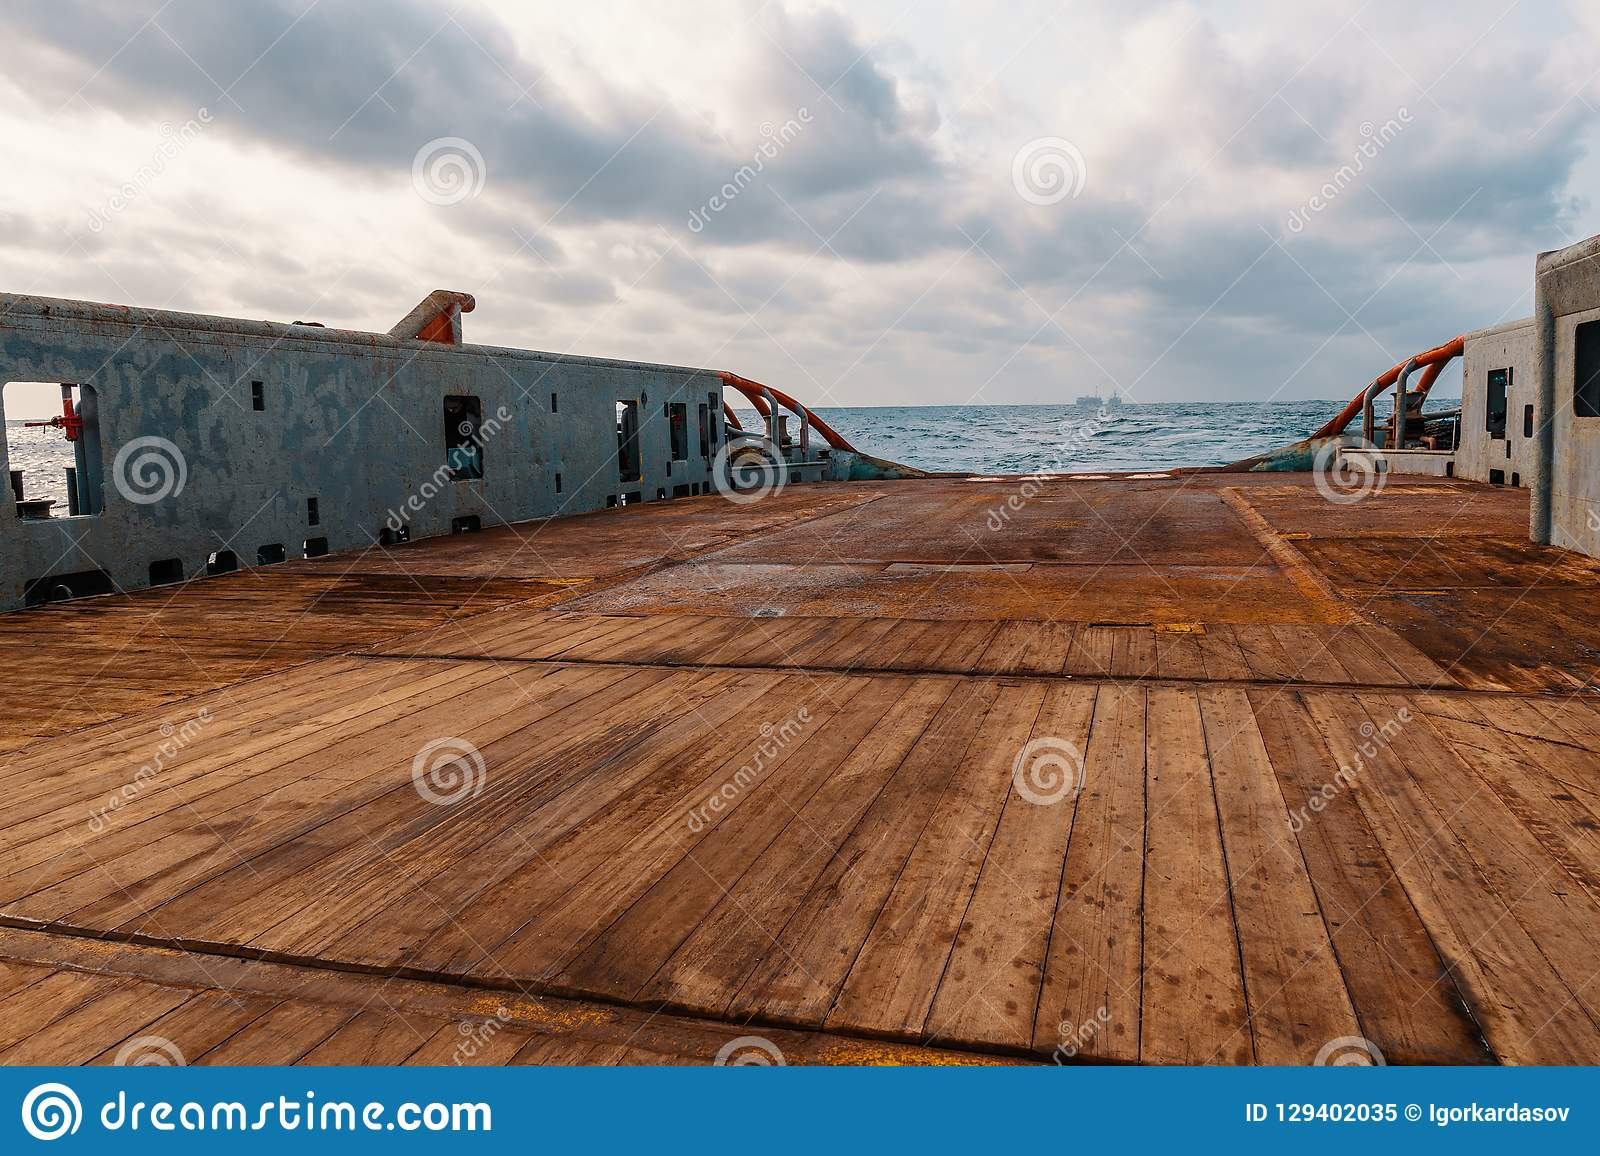 Anchor handling Tug Supply AHTS vessel deck. Anchor-handling Tug Supply AHTS vessel deck. Ocean tug job royalty free stock photo